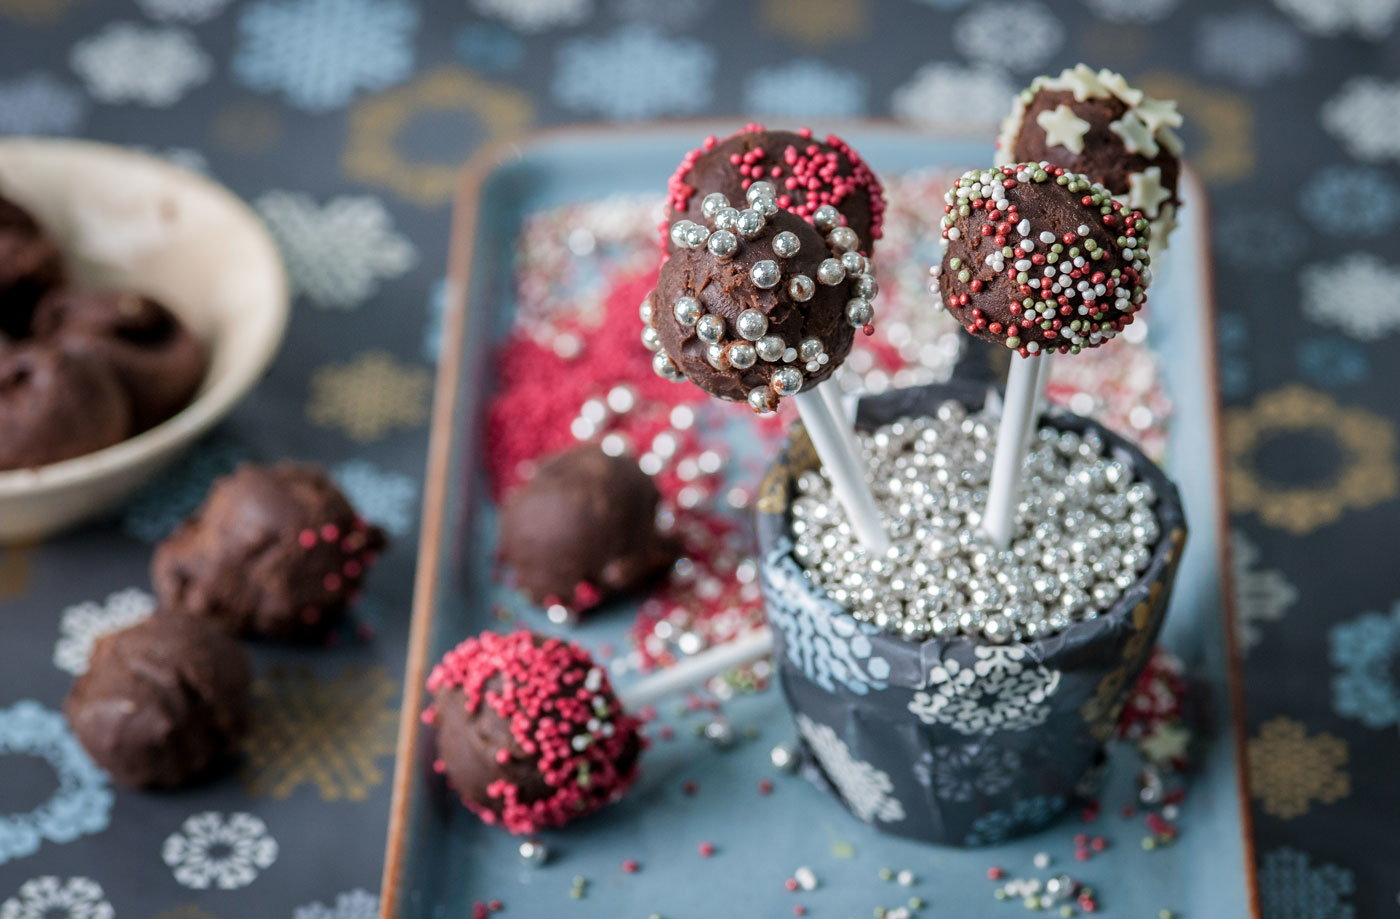 Colin McGurran's chocolate truffle lollipops recipe